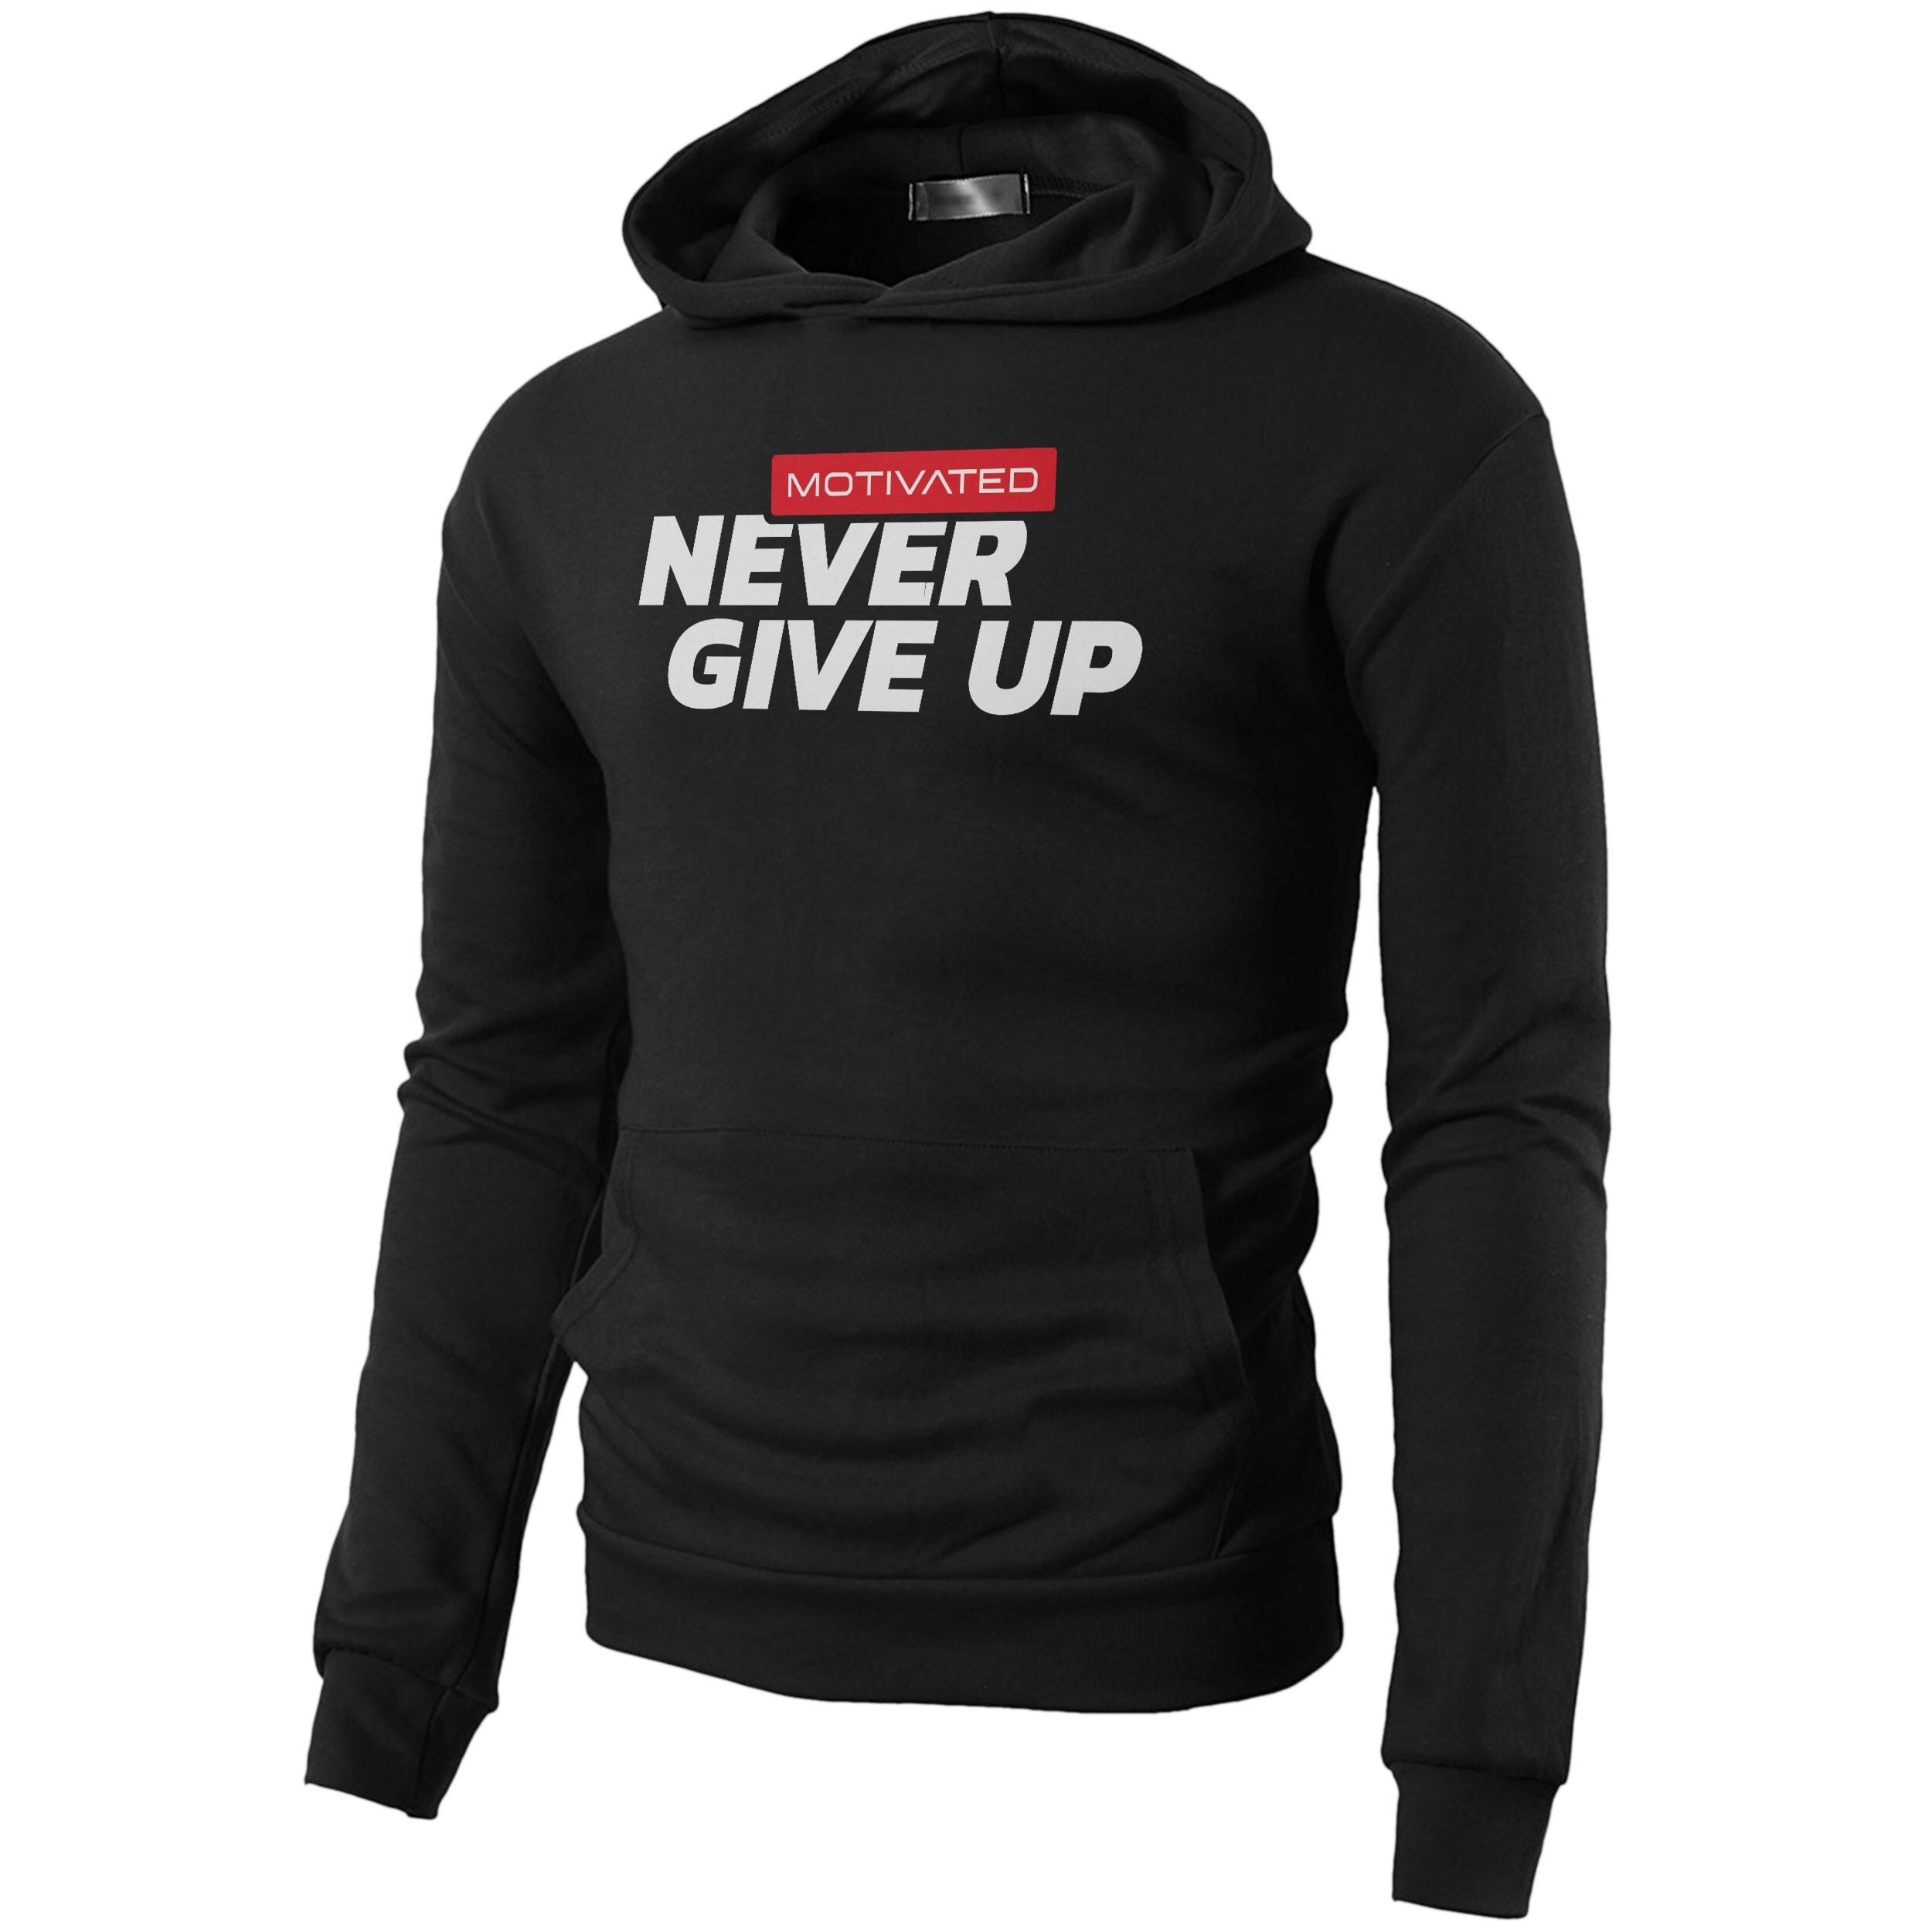 motivated-mikina-na-cvicenie-never-give-up-324